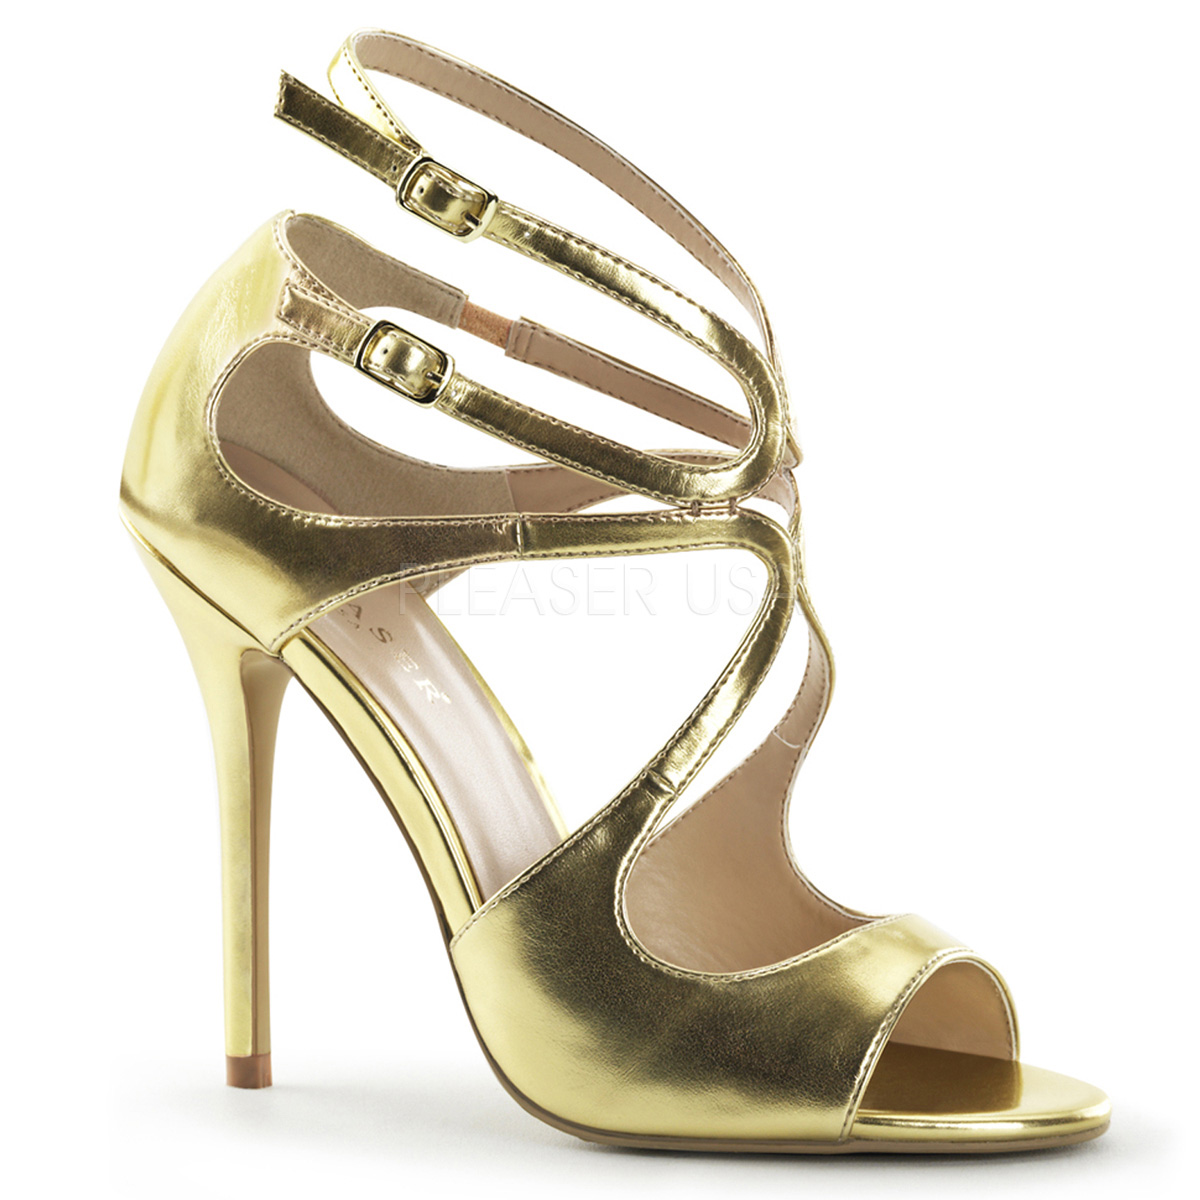 5 Inch Stiletto Heel Strappy Sandal - Click Image to Close